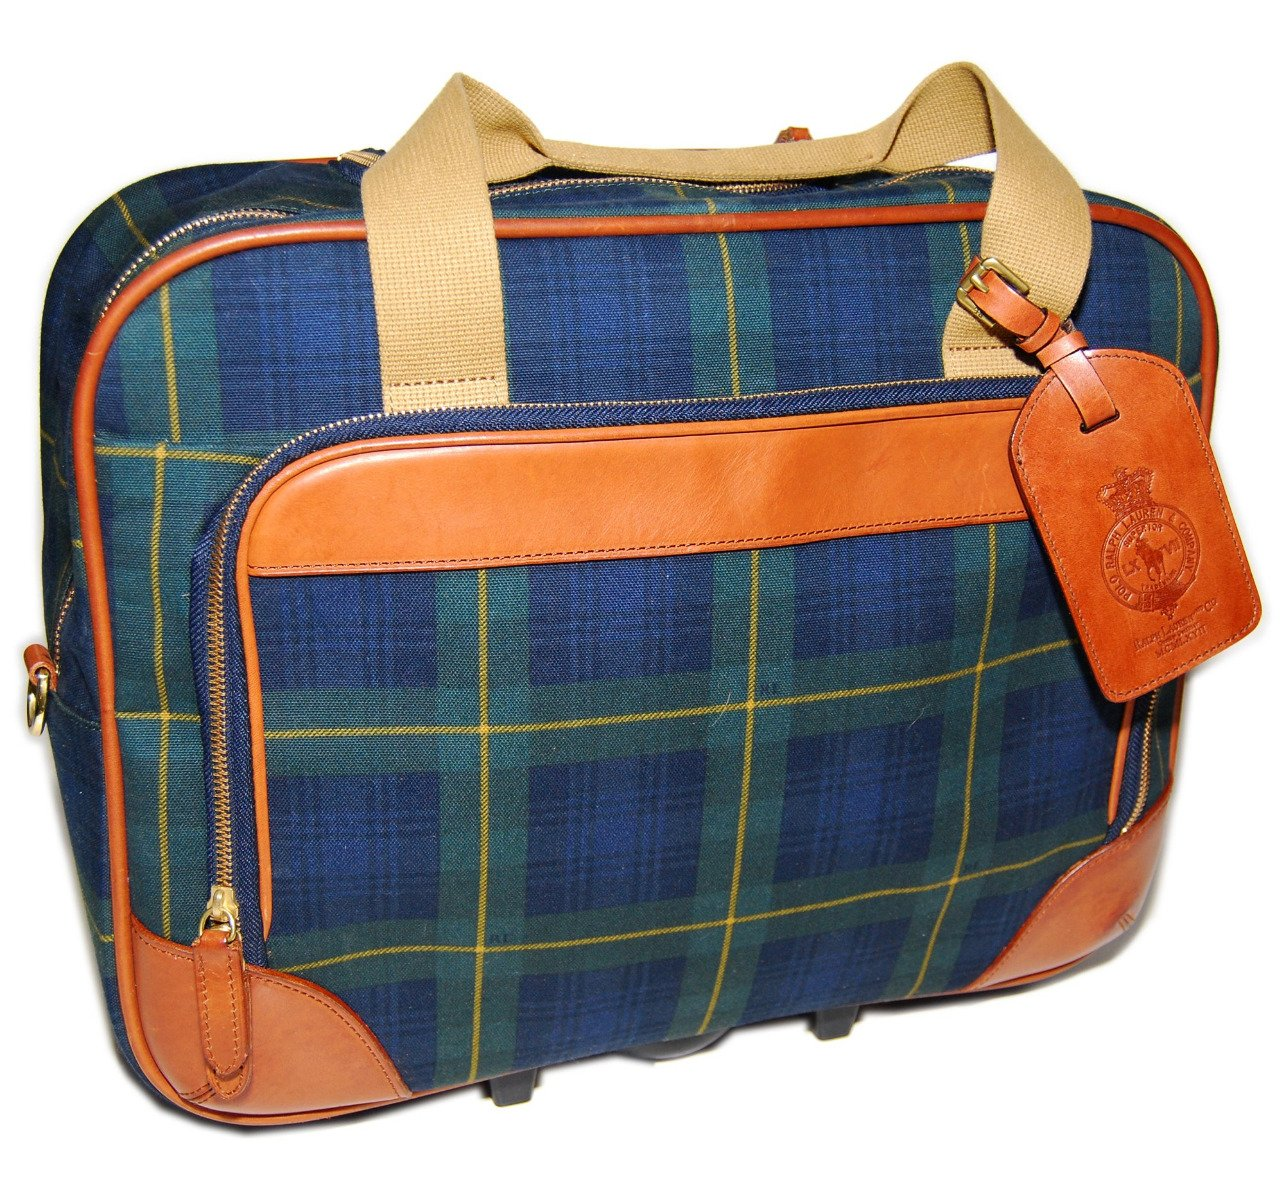 Polo Ralph Lauren Carry-on Travel Luggage Roller Bag Suitcase Green Navy  Plaid  Amazon.ca  Luggage   Bags 5a4902ff7d